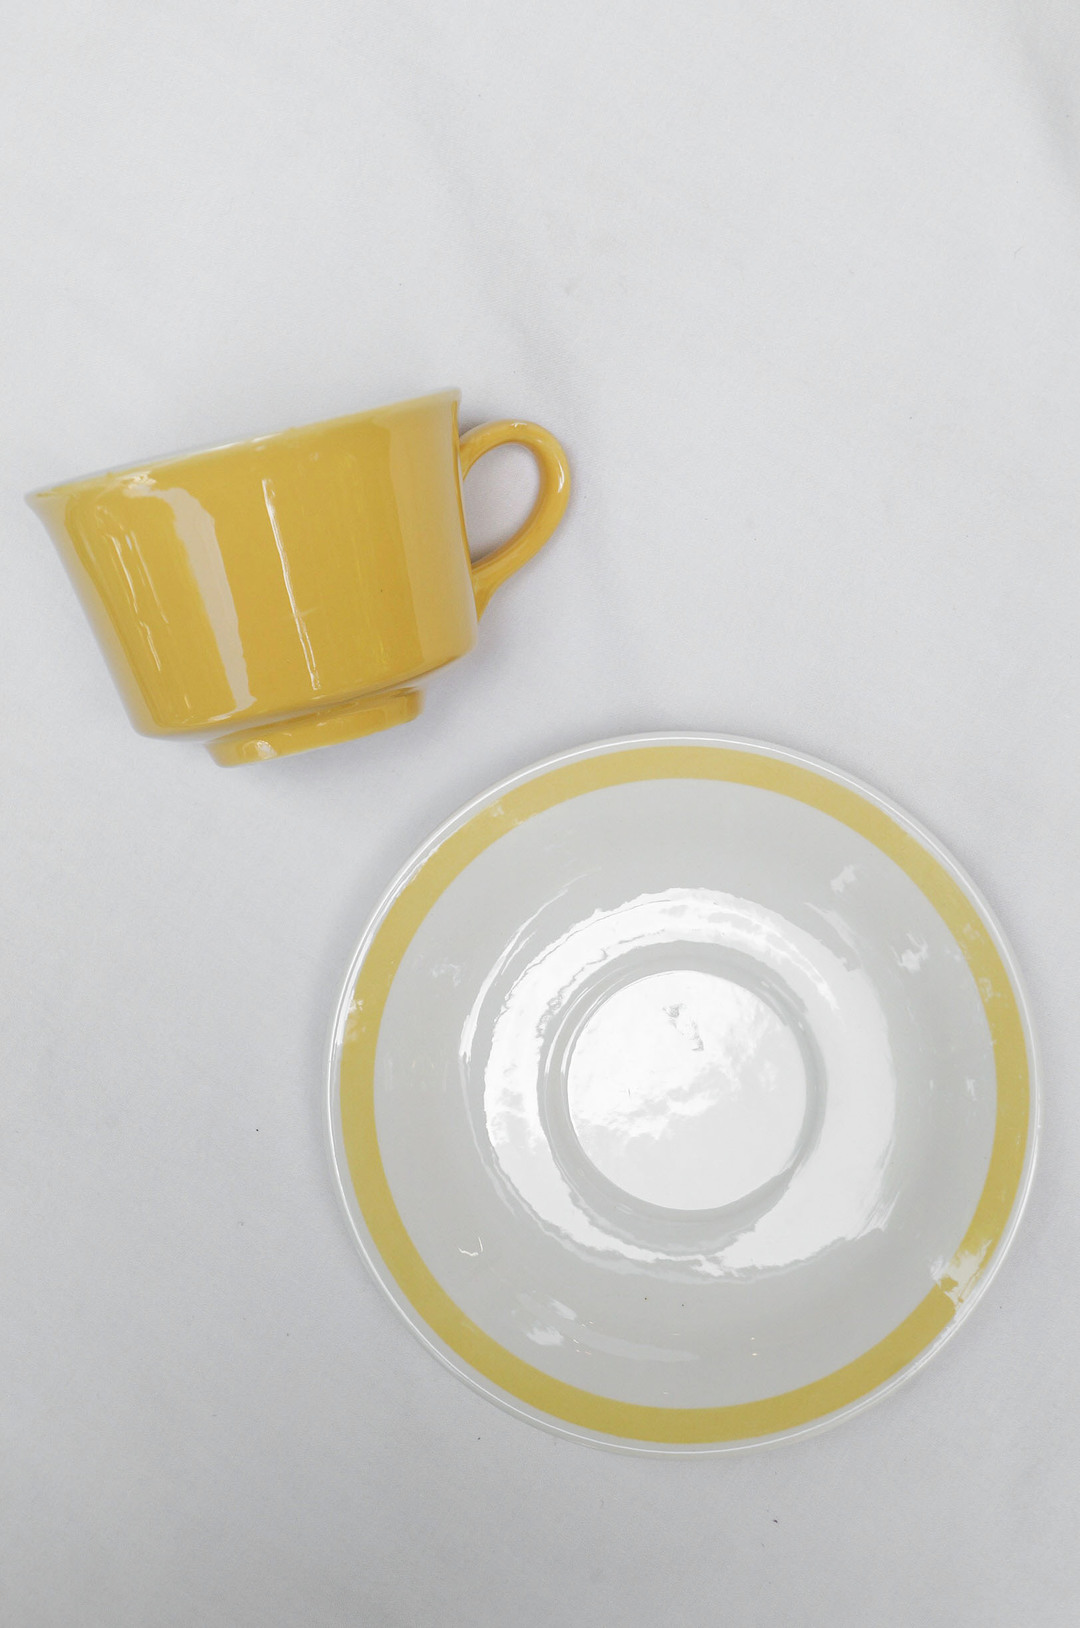 US Vintage Royal China Damsel Cup and Saucer/アメリカ ヴィンテージ ロイヤルチャイナ ダムセル カップ&ソーサー 食器 レトロ 6